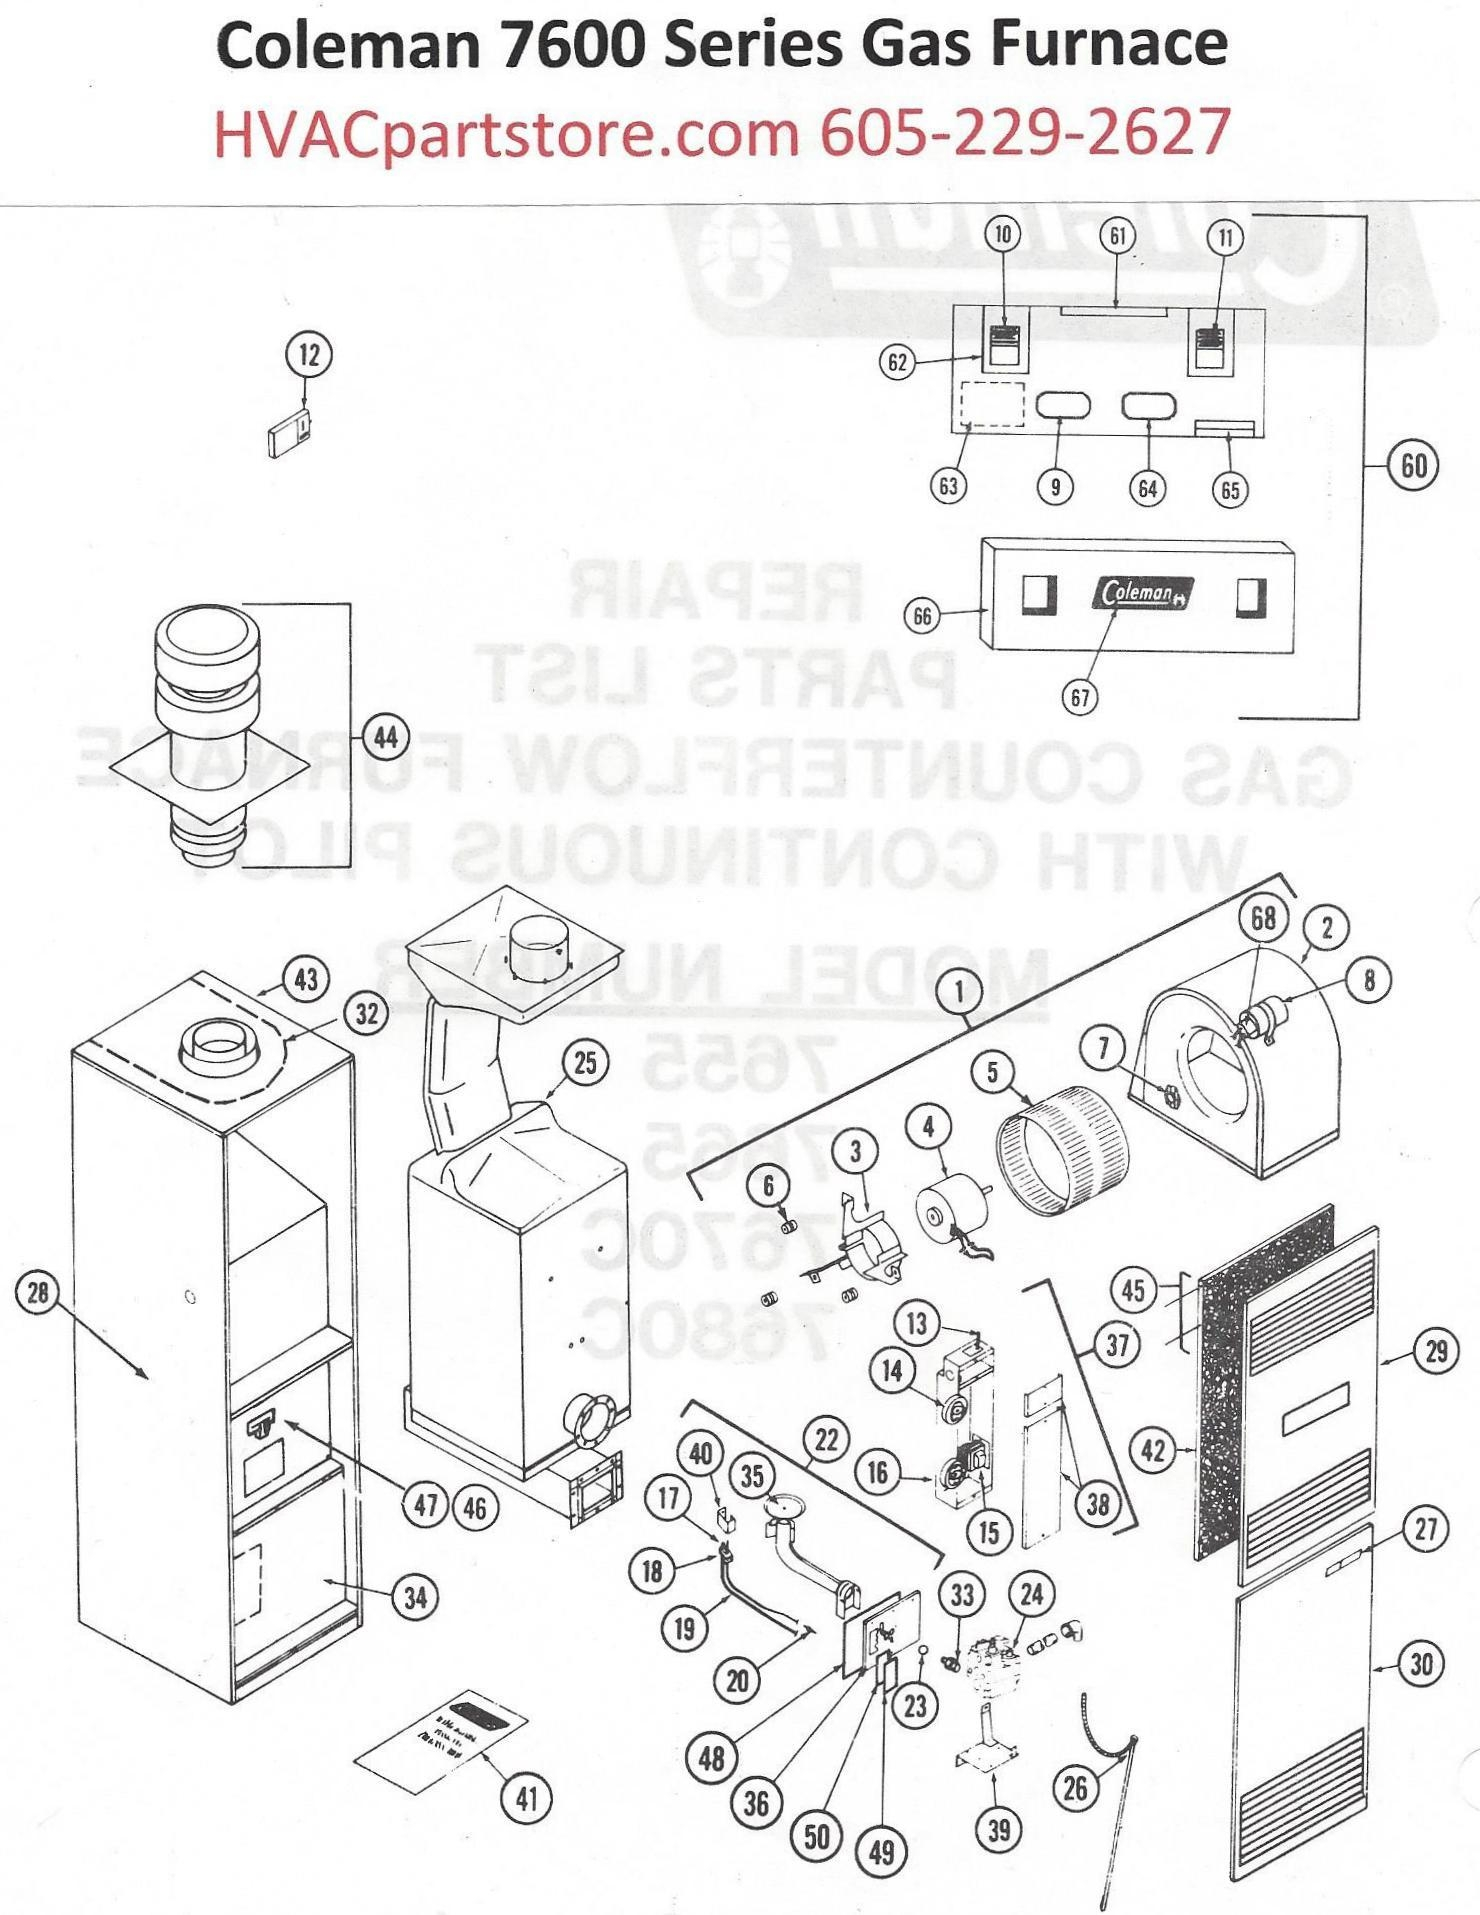 Maytag Heat Pump Wiring Diagram